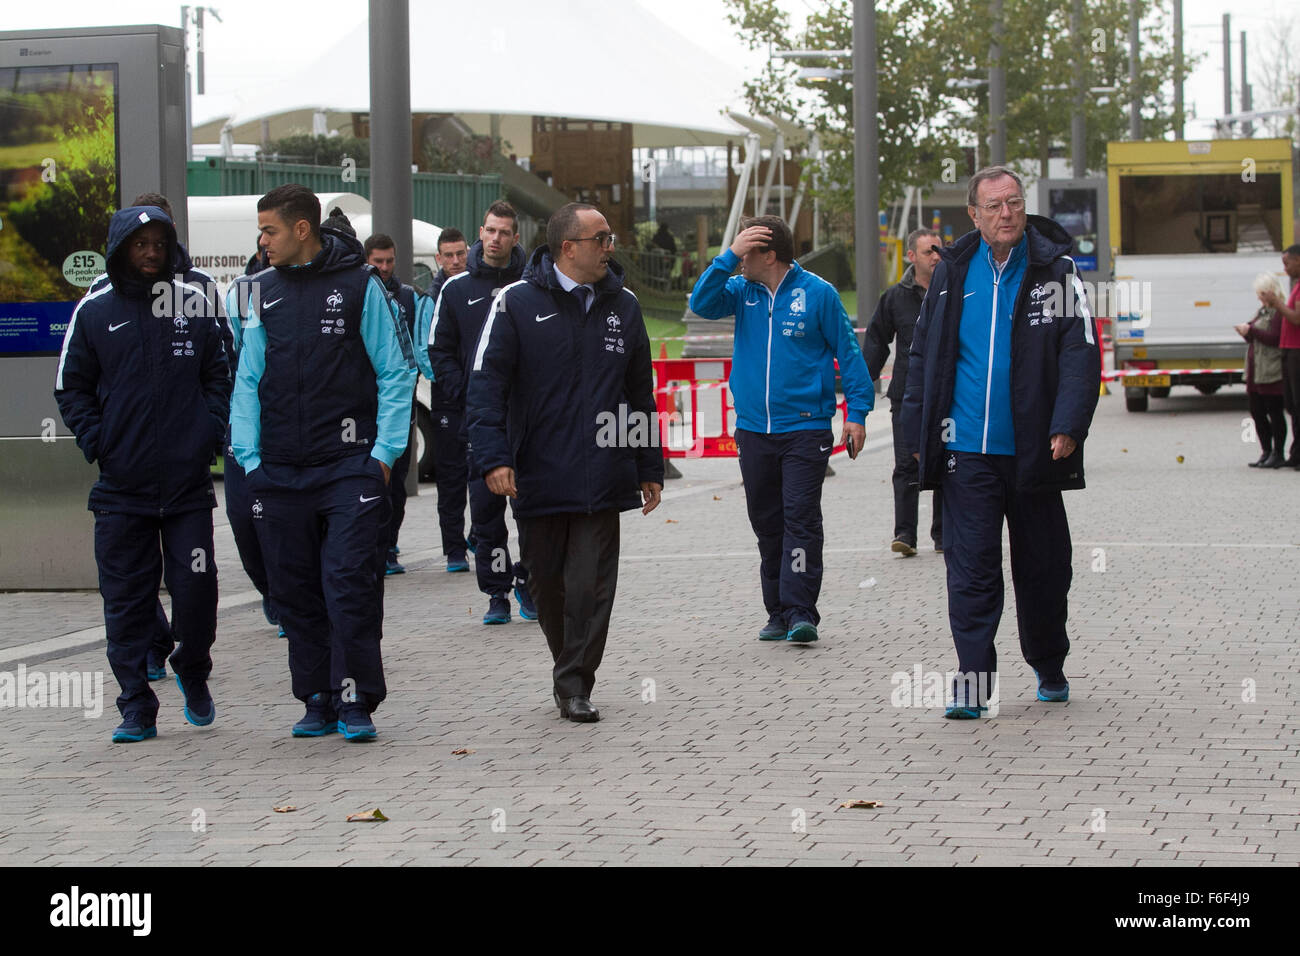 Wembley, London, UK. 17th November, 2015. Members of the French national team stoll around Wembley ahead of the - Stock Image